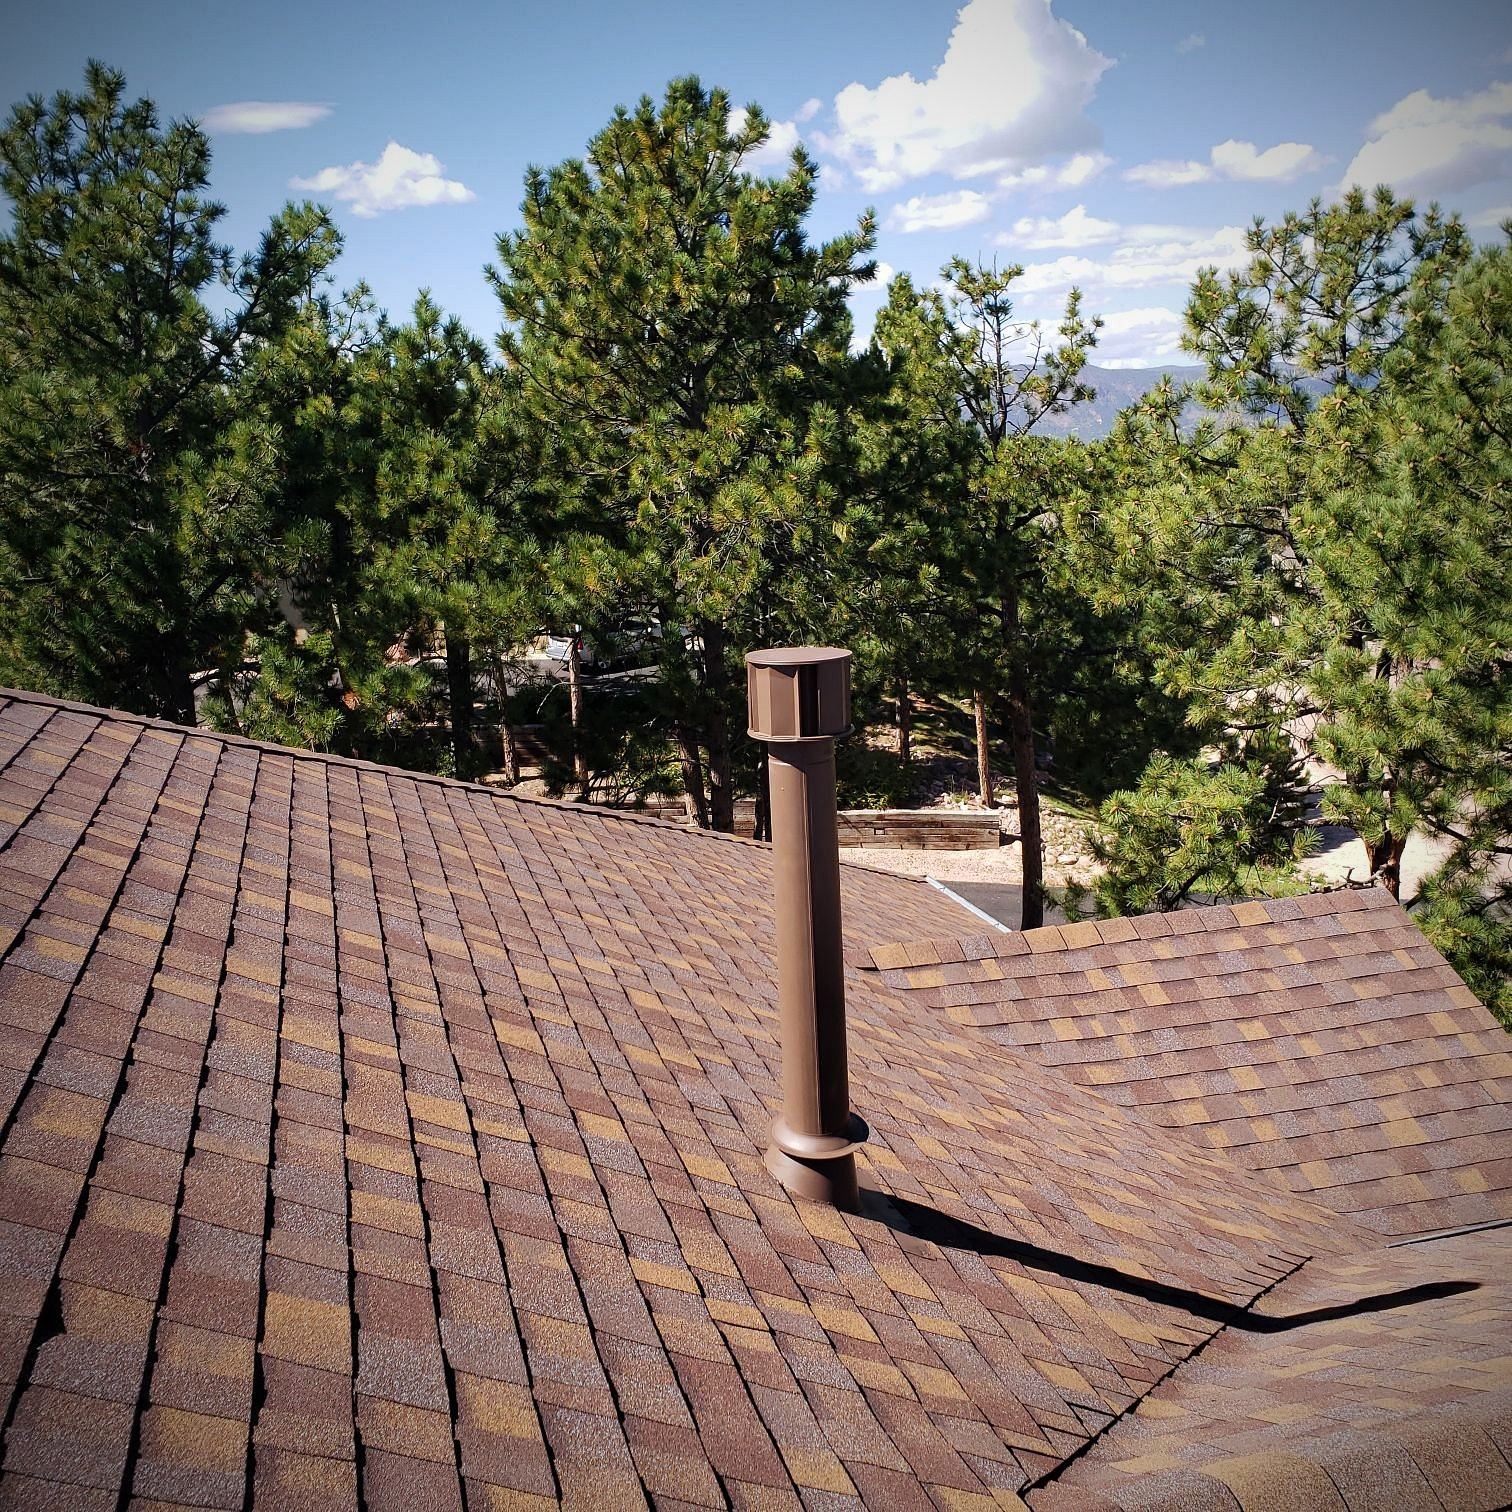 OWENS CORNING DURATION SEDONA CANYON